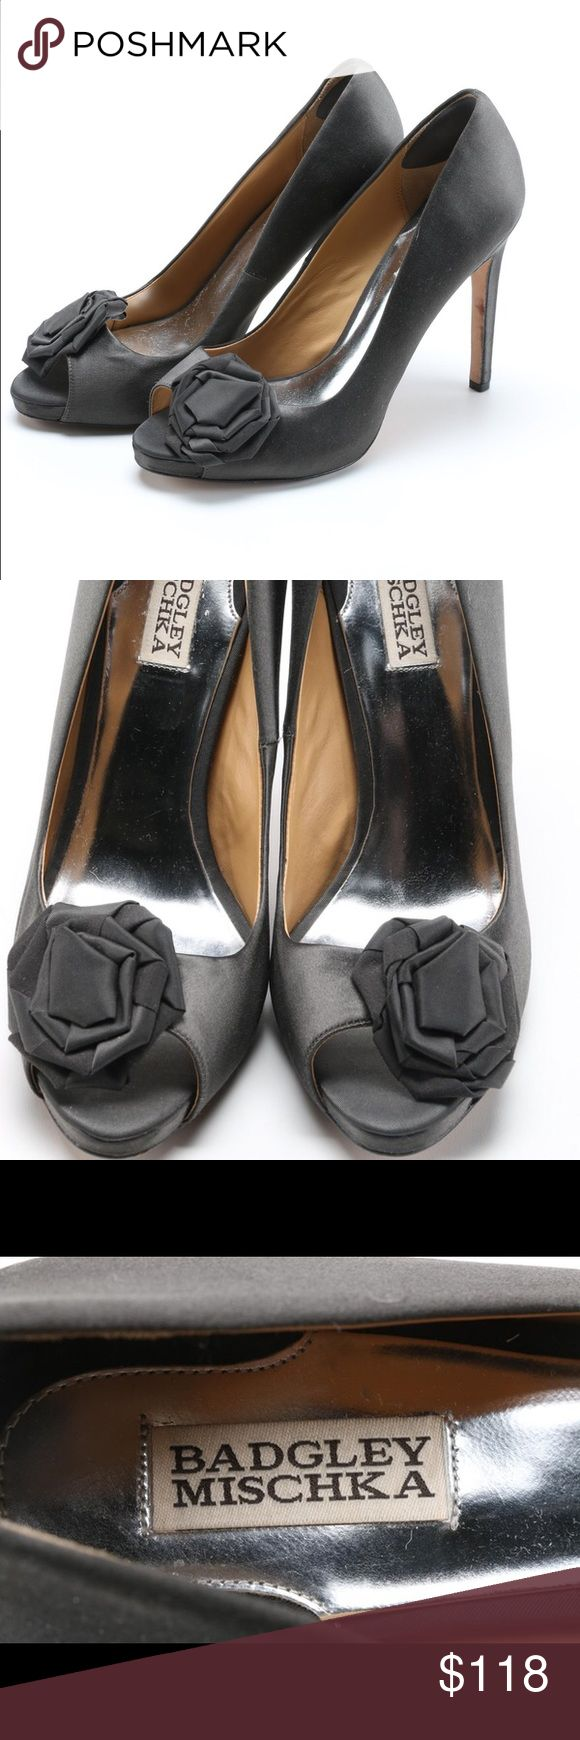 """Badgley Mischka Grey Pumps A pair of women's Badgley Mischka grey pumps. These open-toed shoes feature a black fabric with floral-style bows to the crowns; they have tan lining and silver tone insoles marked """"Badgley Mischka."""" The leather soles contain the maker's label and the shoe size """"9 1/2 M."""" Badgley Mischka Shoes Heels"""